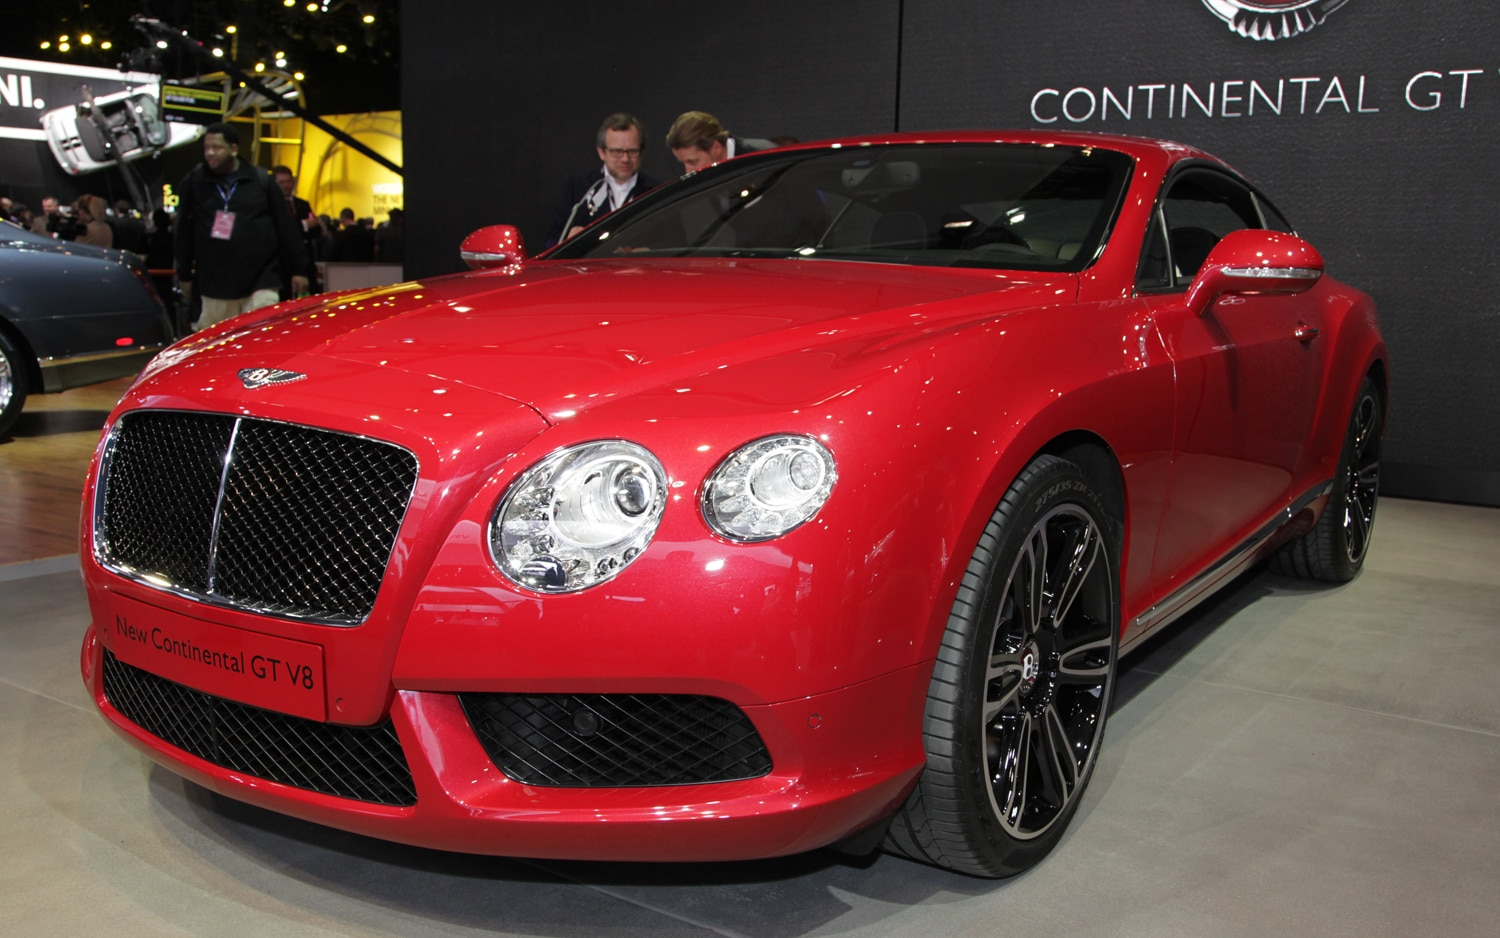 2013 Bentley Continental GT V 8 Front View1